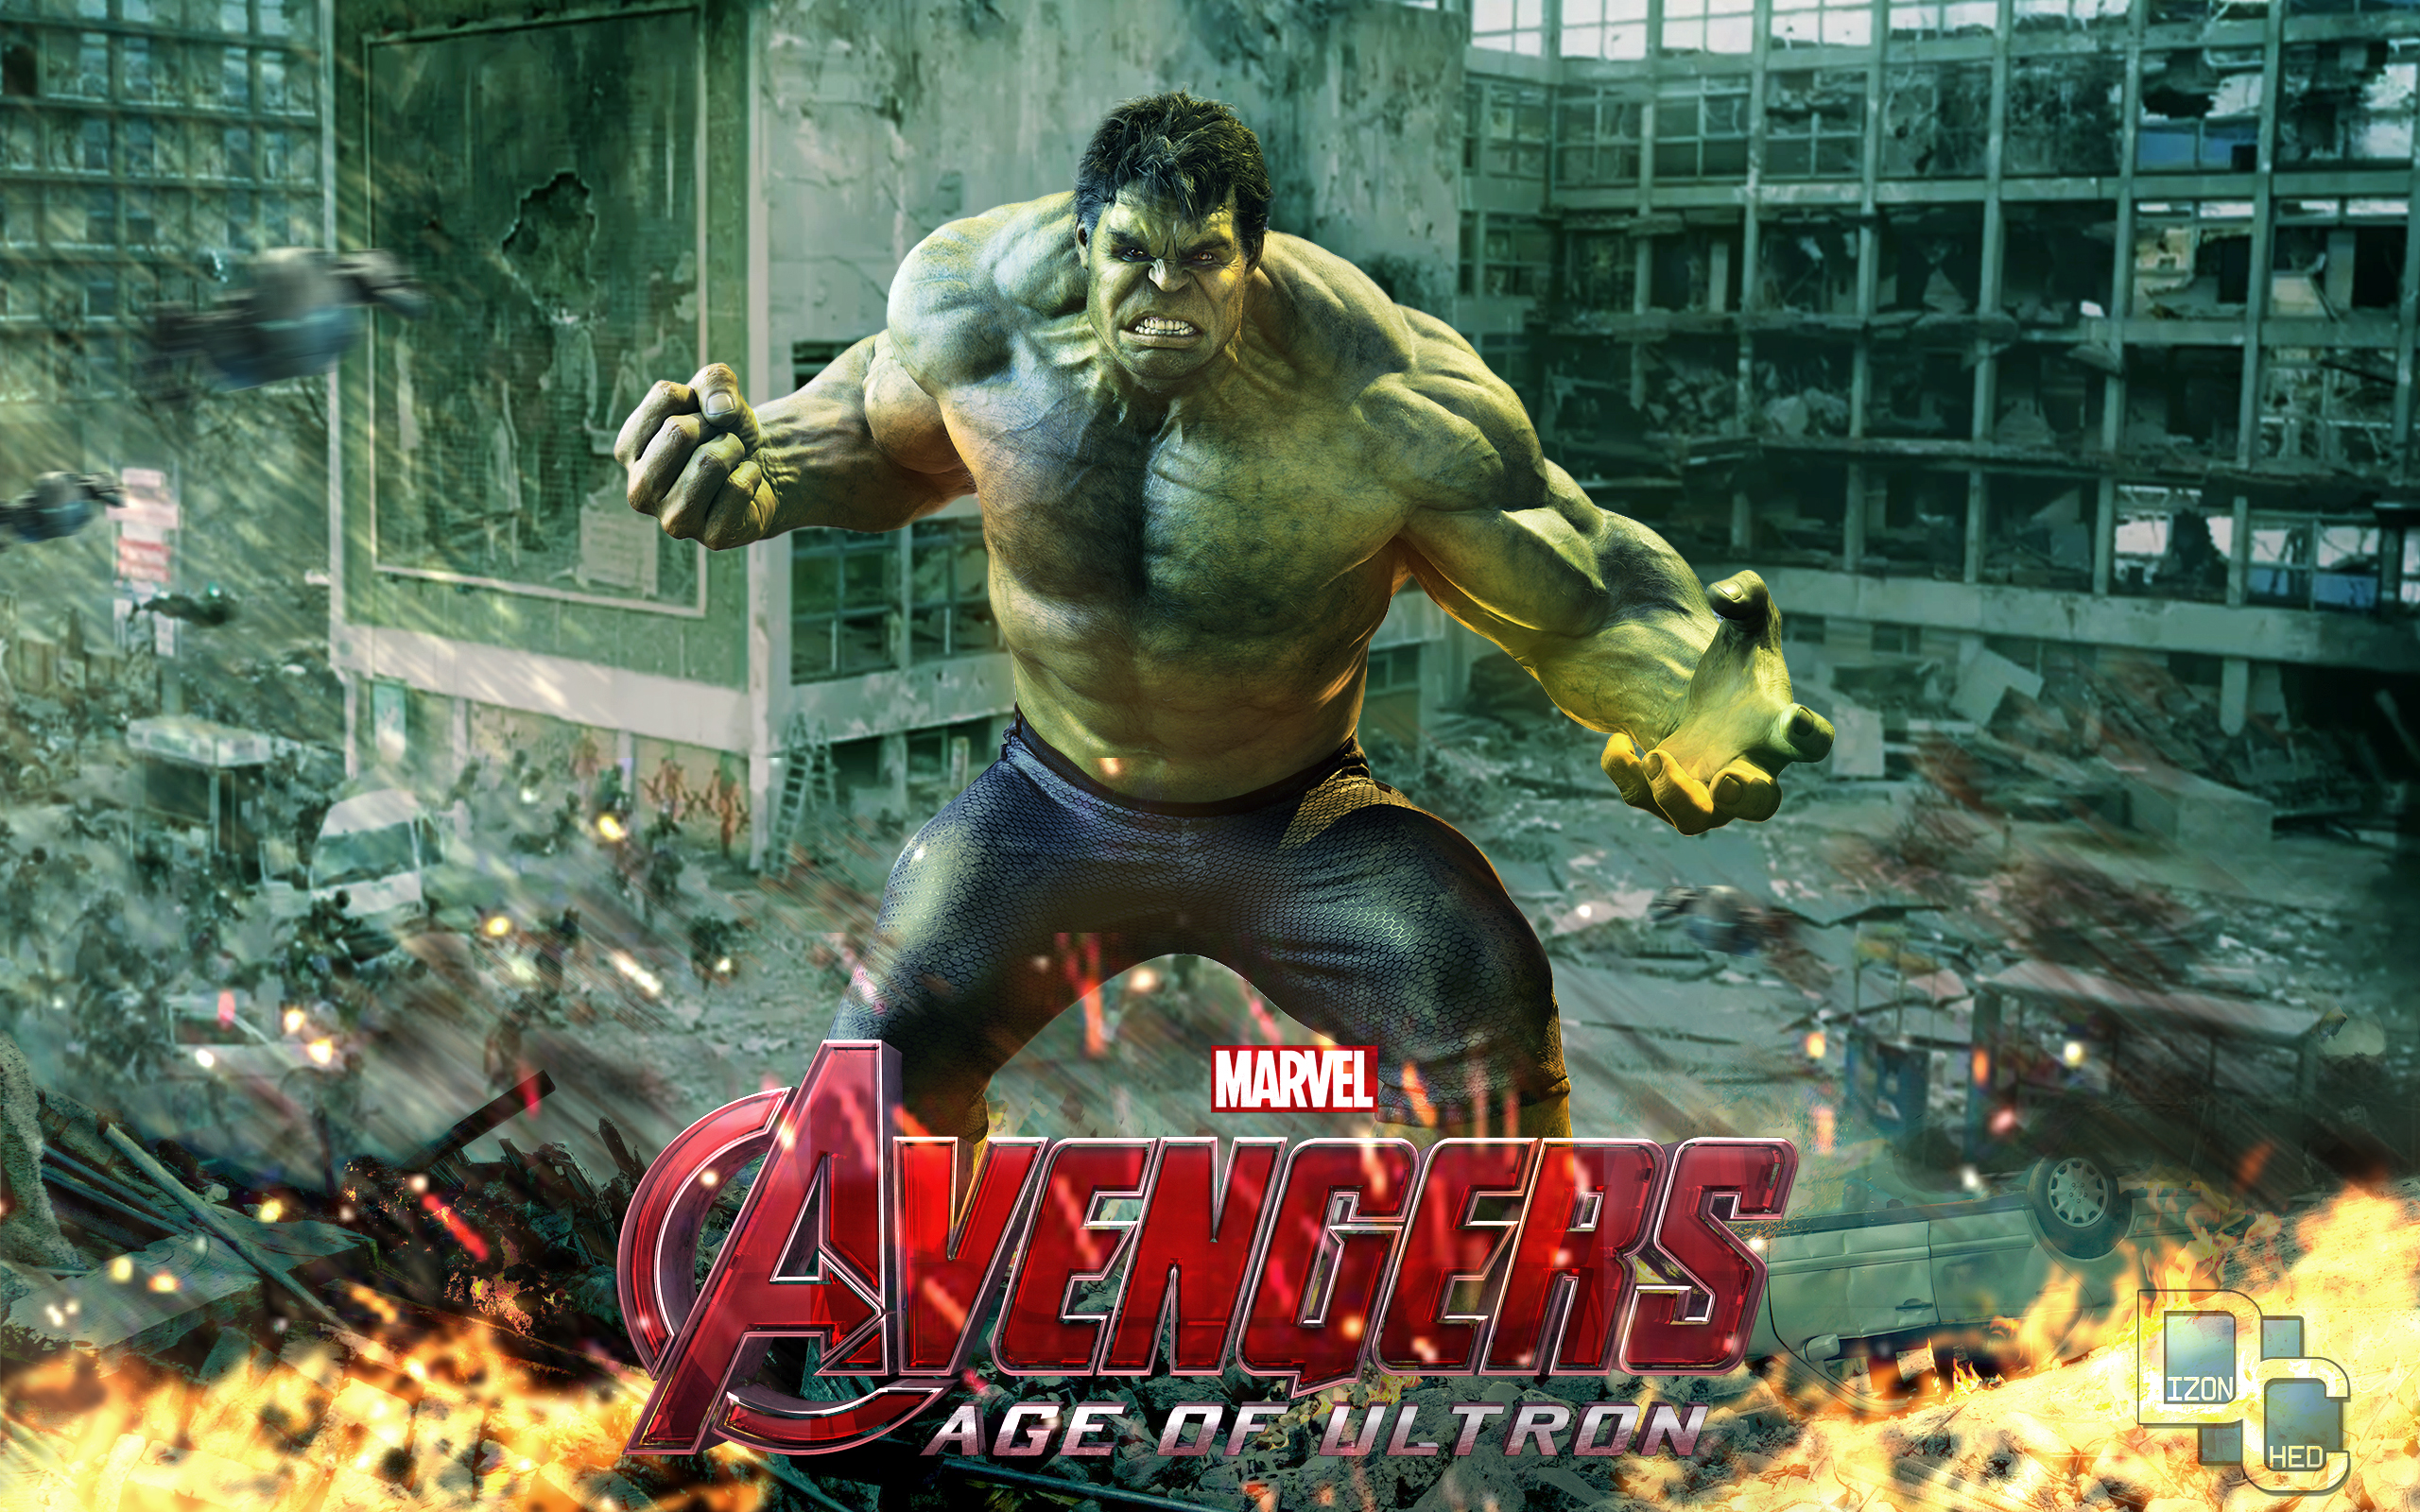 Avengers age of ultron the incredible hulk by - Incredible hulk wallpaper avengers ...